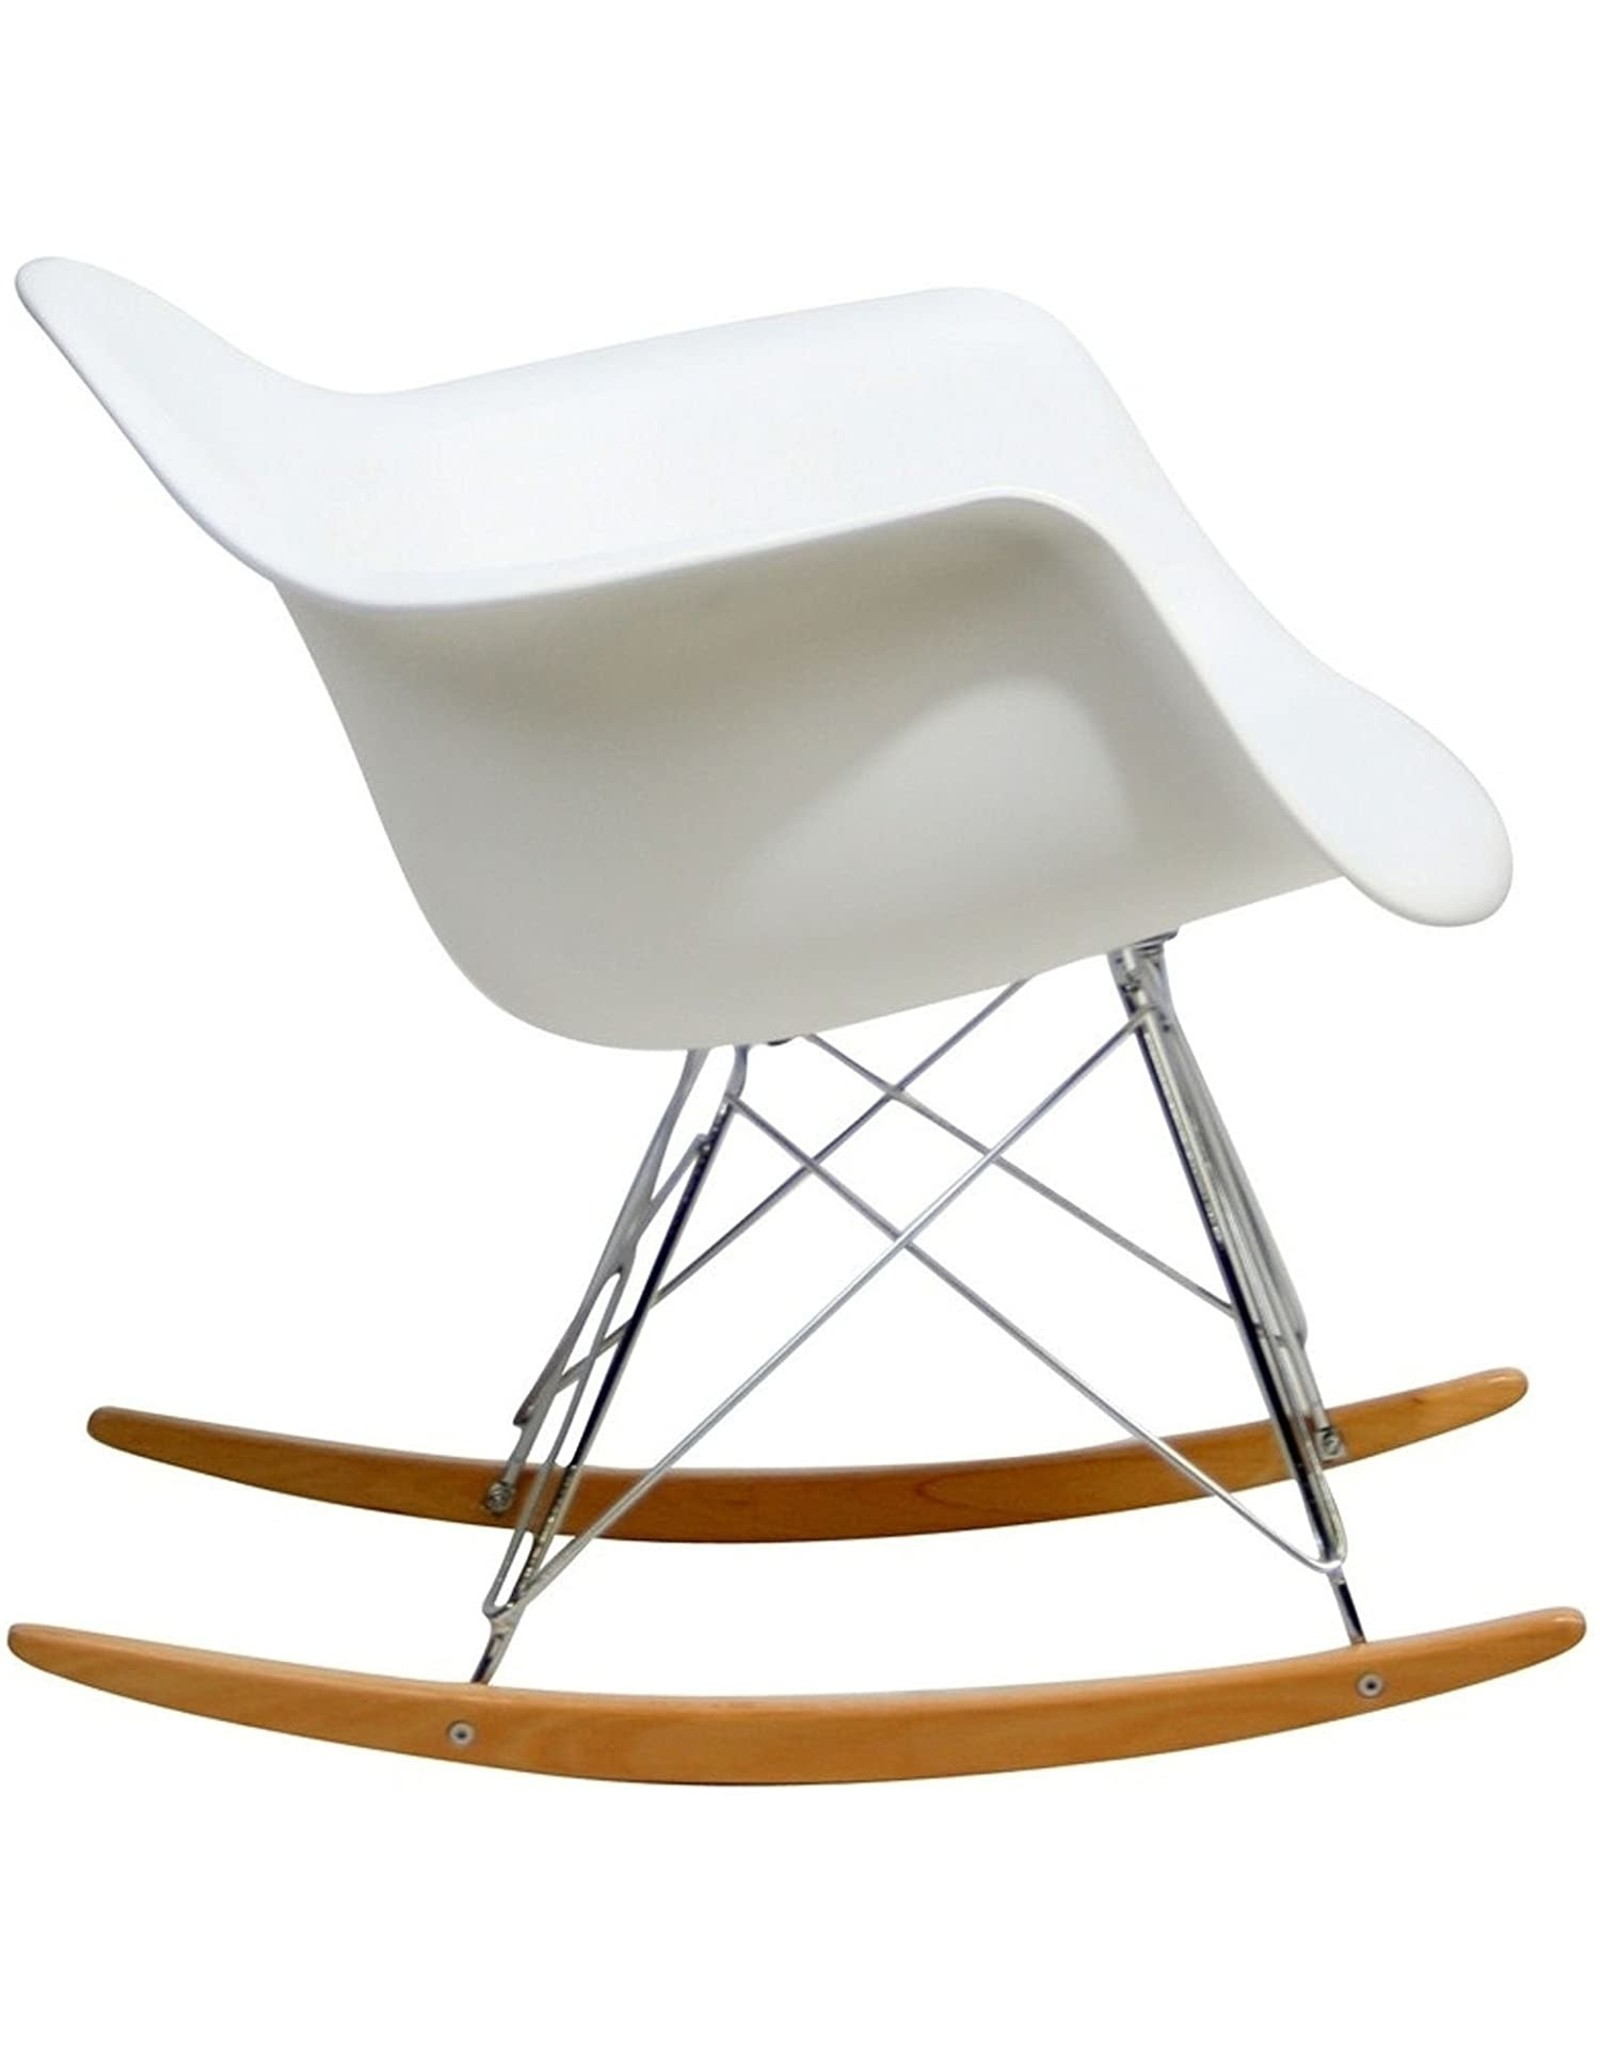 Modway Modway Mid-Century Modern Molded Plastic Kid's Size Lounge Chair Rocker in White